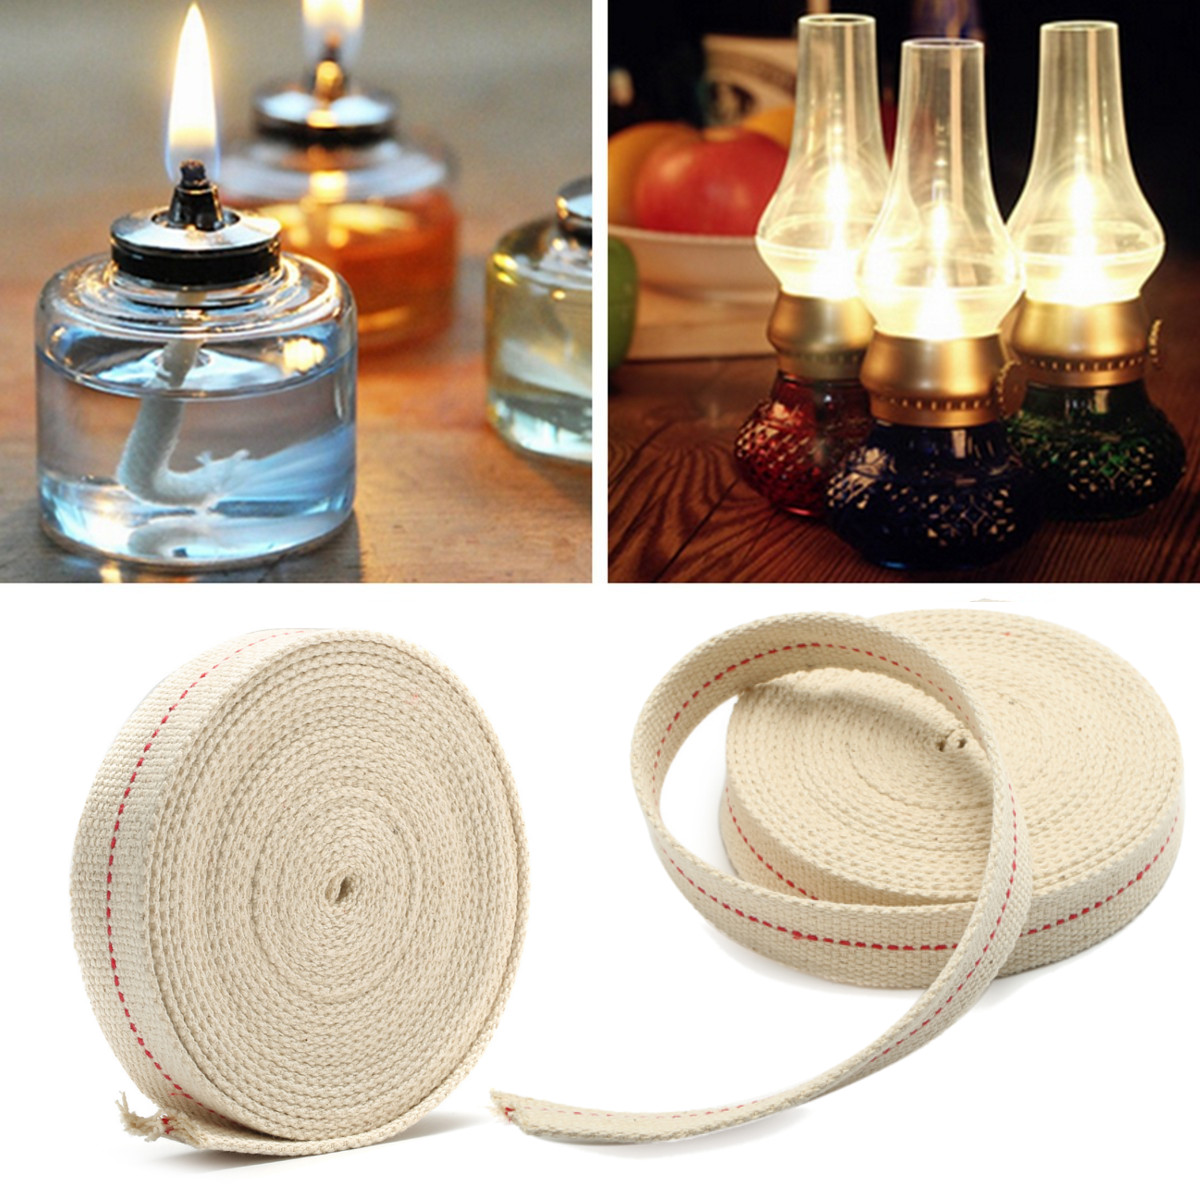 1'' 15ft Flat Cotton Wick Oil Lamps Fiber Alcohol Foot Lanterns Light DIY by